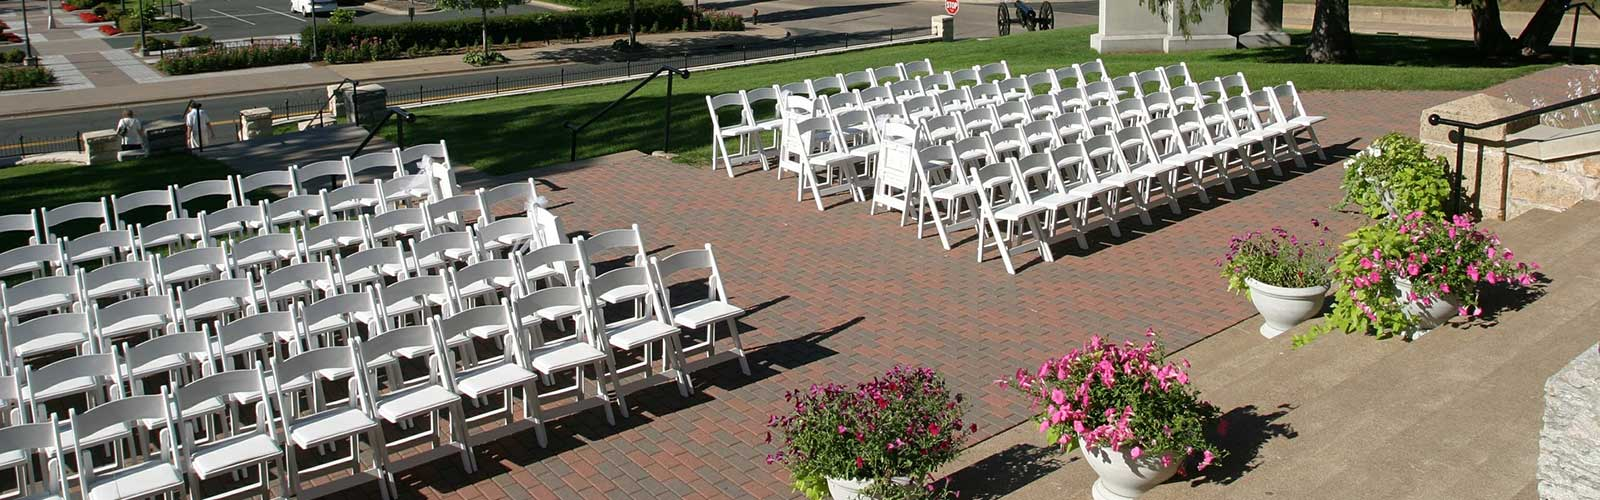 Event rentals in Southwestern Idaho & Eastern Oregon